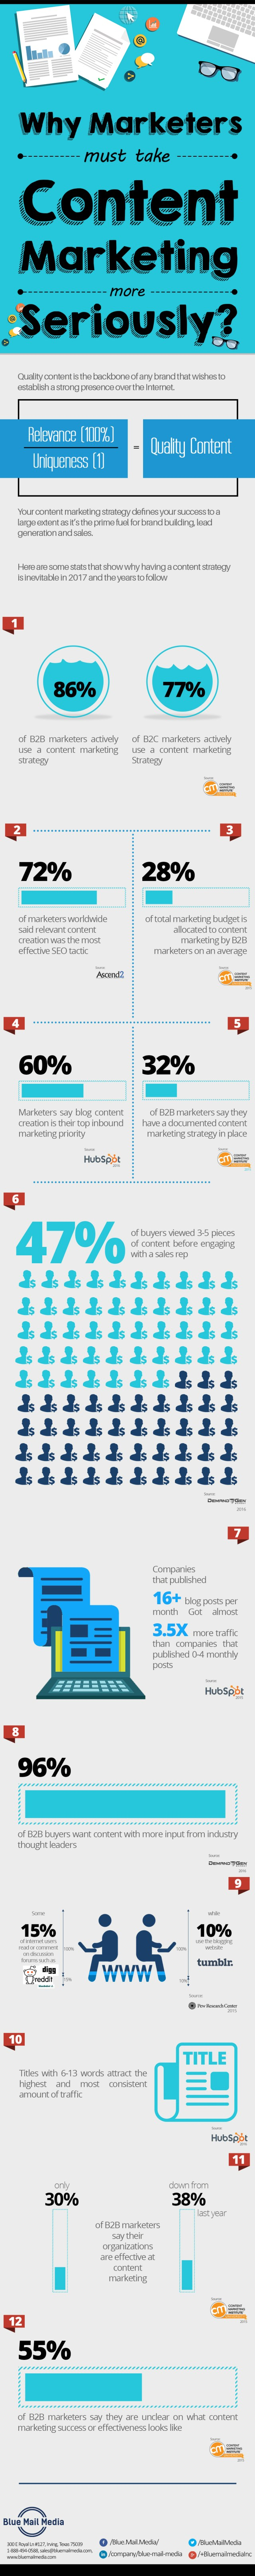 why-marketers-must-take-content-marketing-more-seriously_5939147f8061c